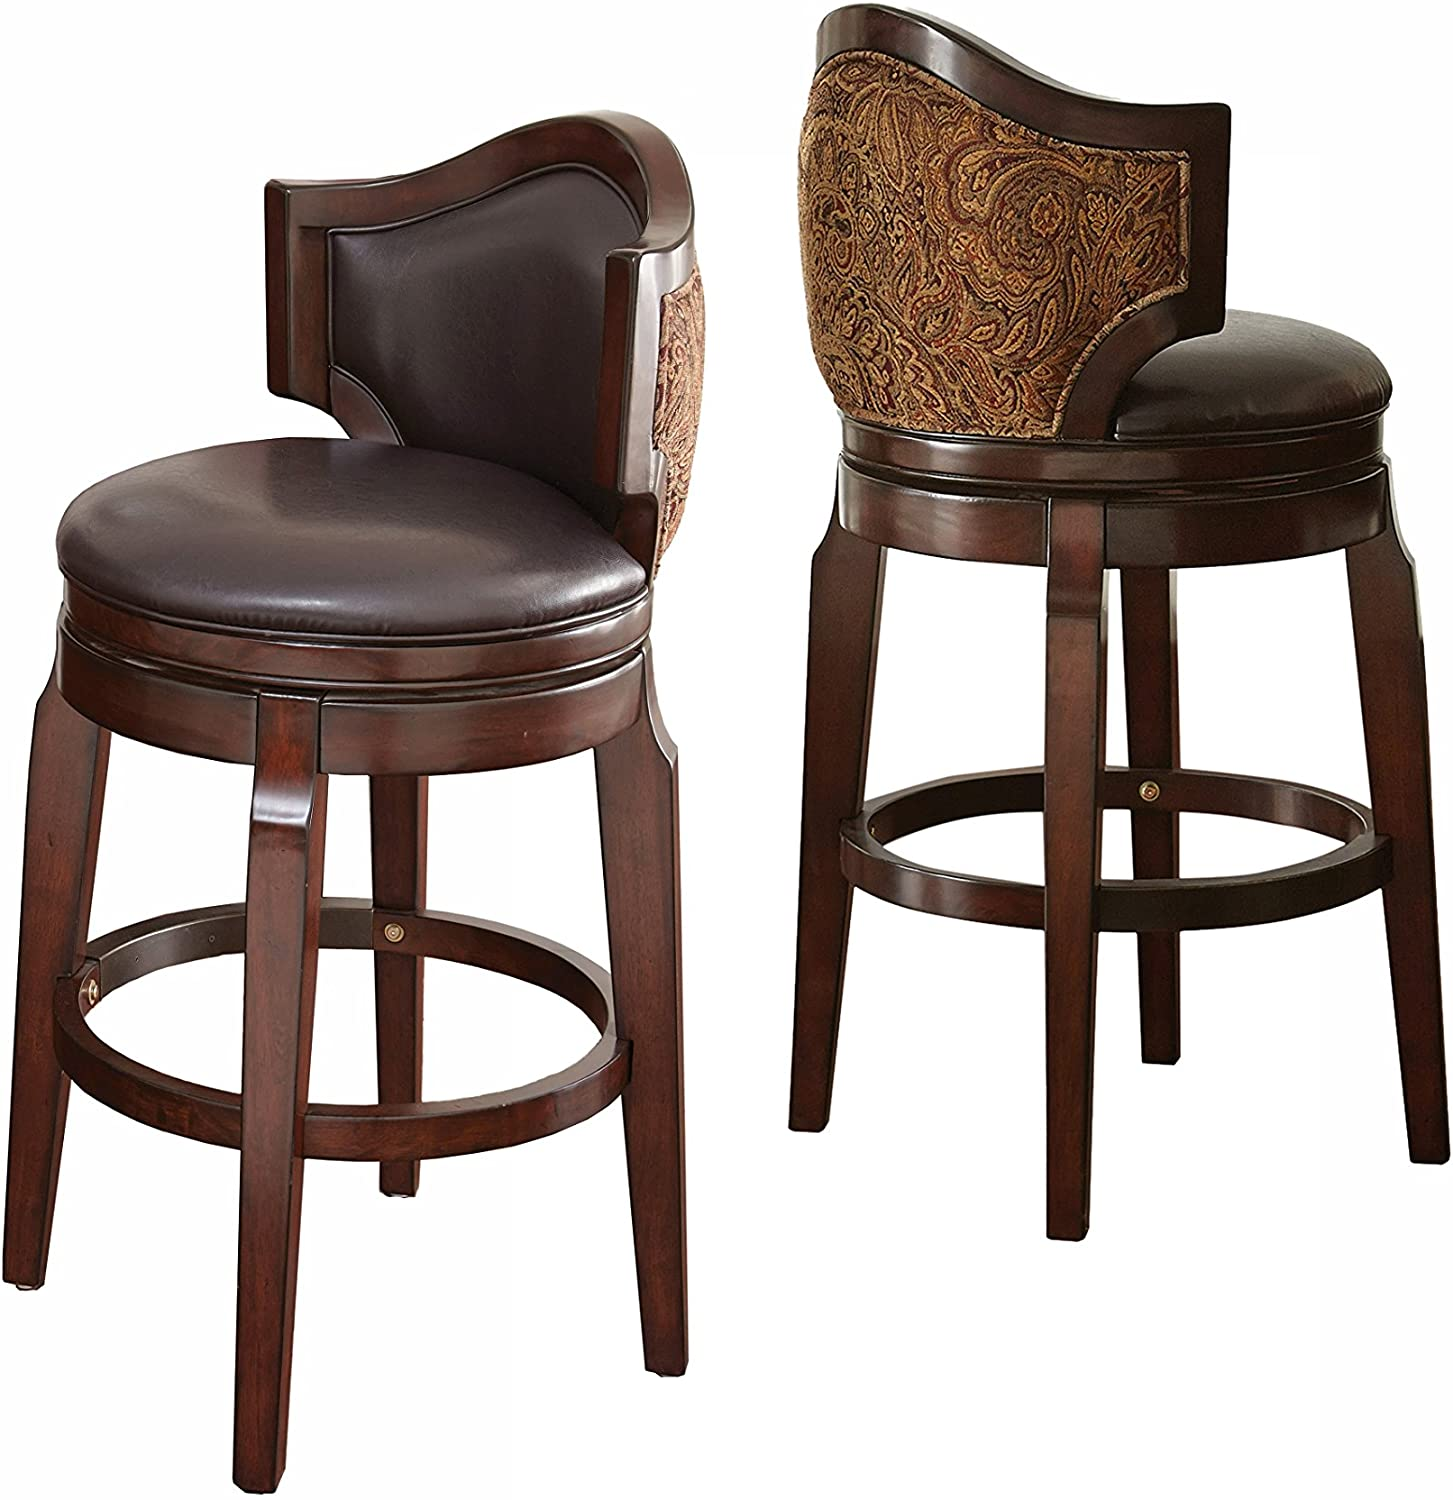 Steve Silver Company Jasper Bar Chairs, Set of 2, Brown